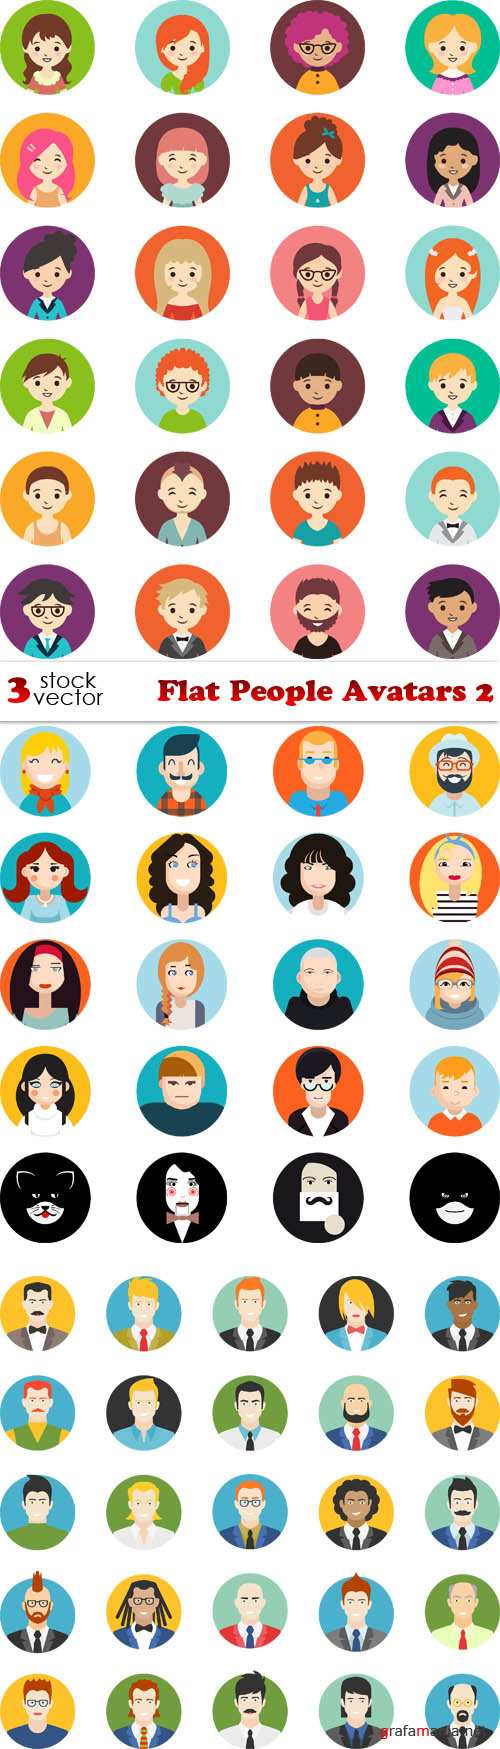 Vectors - Flat People Avatars 2